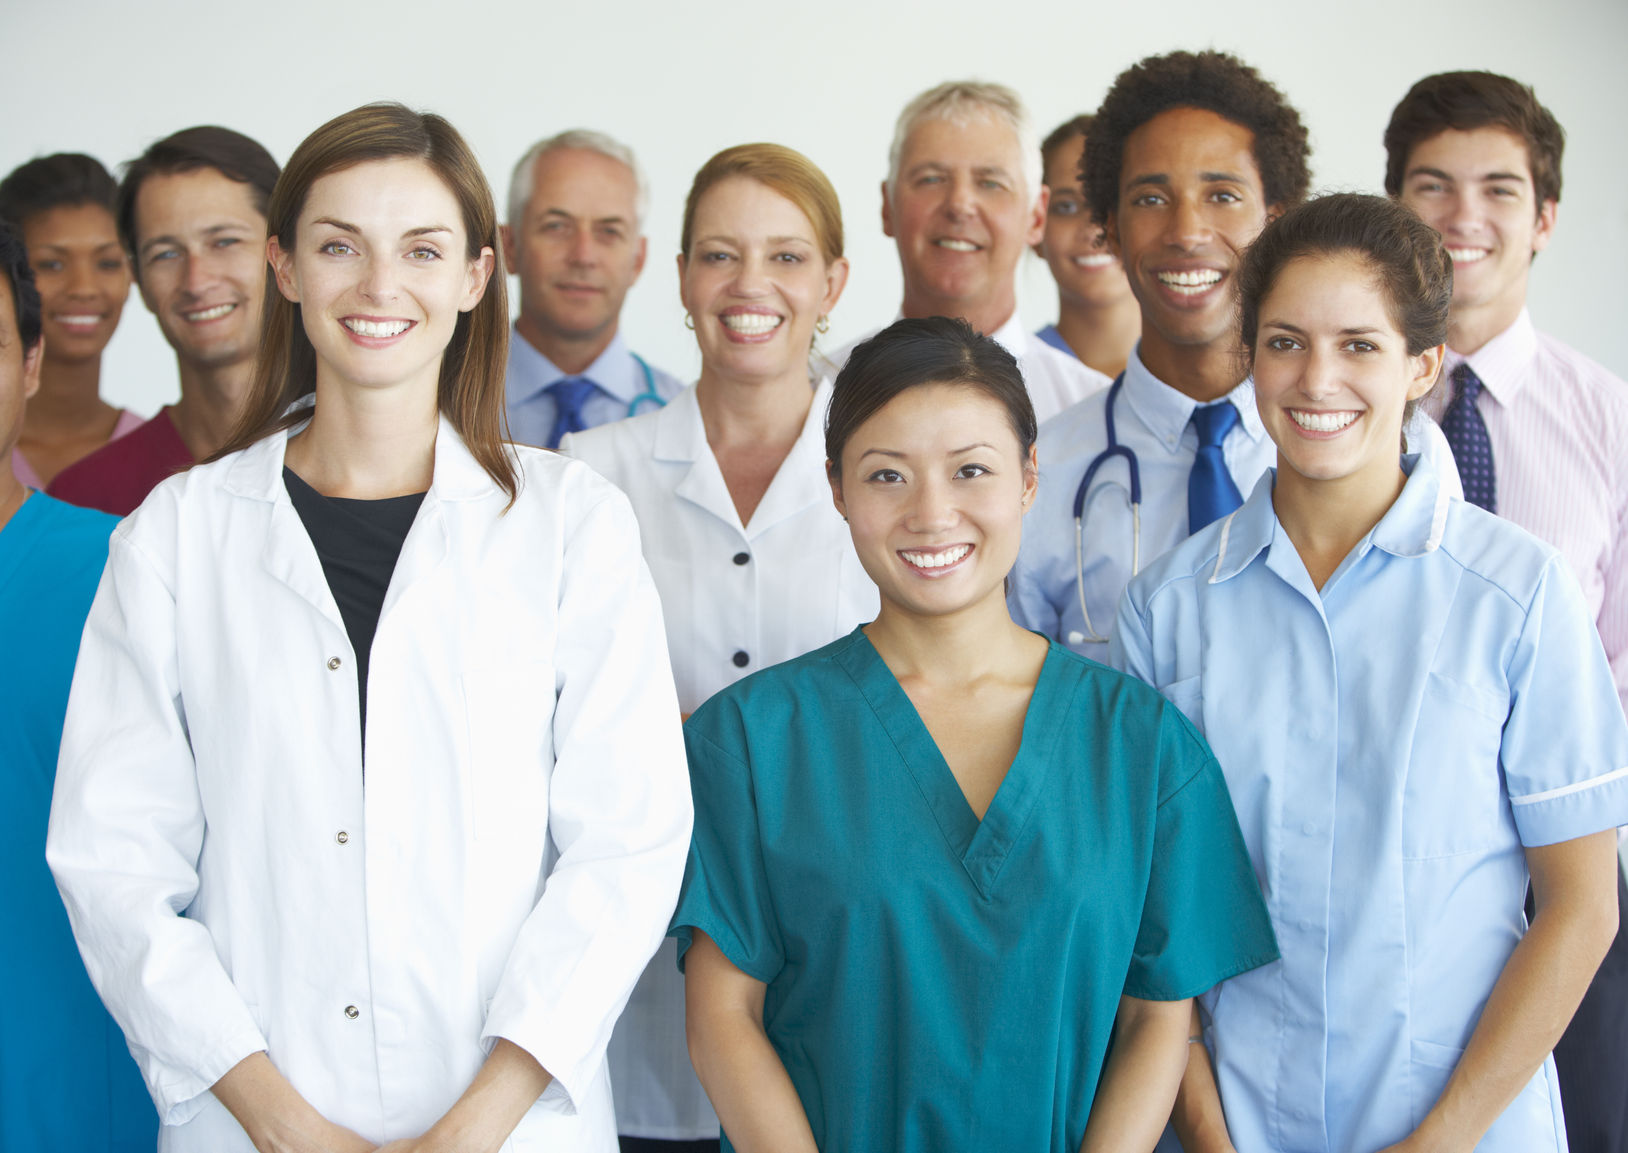 Work In Allied Healthcare Careers Without A Degree